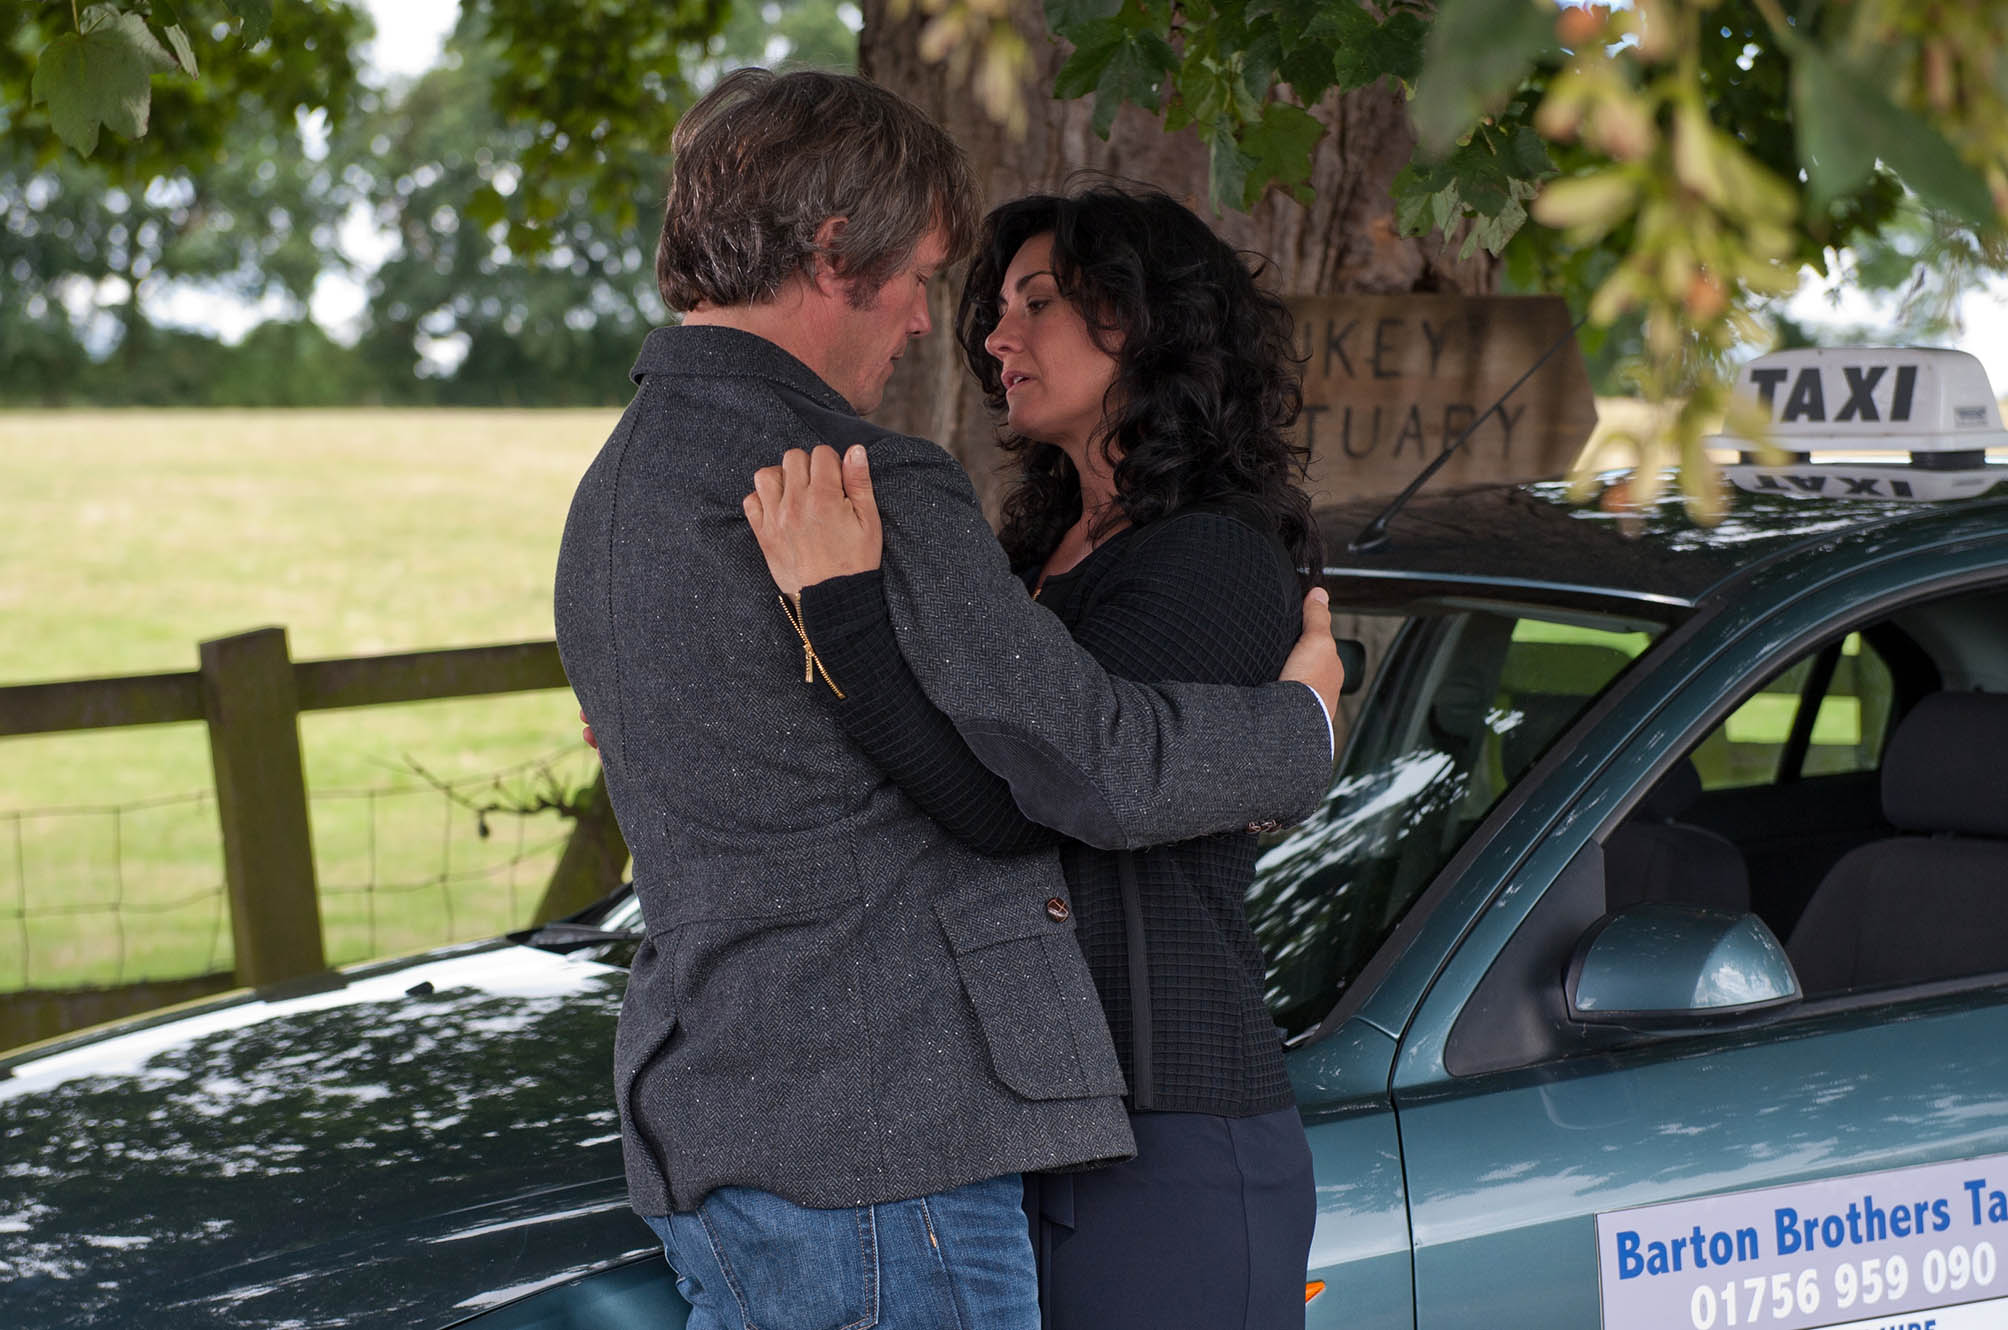 FROM ITV STRICT EMBARGO - NO USE BEFORE TUESDAY 30 AUGUST 2016 Emmerdale - Ep 7608 Tuesday 6th September 2016 On a country road, James Barton [BILL WARD] and Moira Barton [NATALIE J ROBB] rescue a donkey. Moira gets emotional about everyone leaving her, and James comforts her in the cab, their eyes meet and they move in for a passionate kiss... Picture contact: david.crook@itv.com on 0161 952 6214 Photographer - Amy Brammall This photograph is (C) ITV Plc and can only be reproduced for editorial purposes directly in connection with the programme or event mentioned above, or ITV plc. Once made available by ITV plc Picture Desk, this photograph can be reproduced once only up until the transmission [TX] date and no reproduction fee will be charged. Any subsequent usage may incur a fee. This photograph must not be manipulated [excluding basic cropping] in a manner which alters the visual appearance of the person photographed deemed detrimental or inappropriate by ITV plc Picture Desk. This photograph must not be syndicated to any other company, publication or website, or permanently archived, without the express written permission of ITV Plc Picture Desk. Full Terms and conditions are available on the website www.itvpictures.com